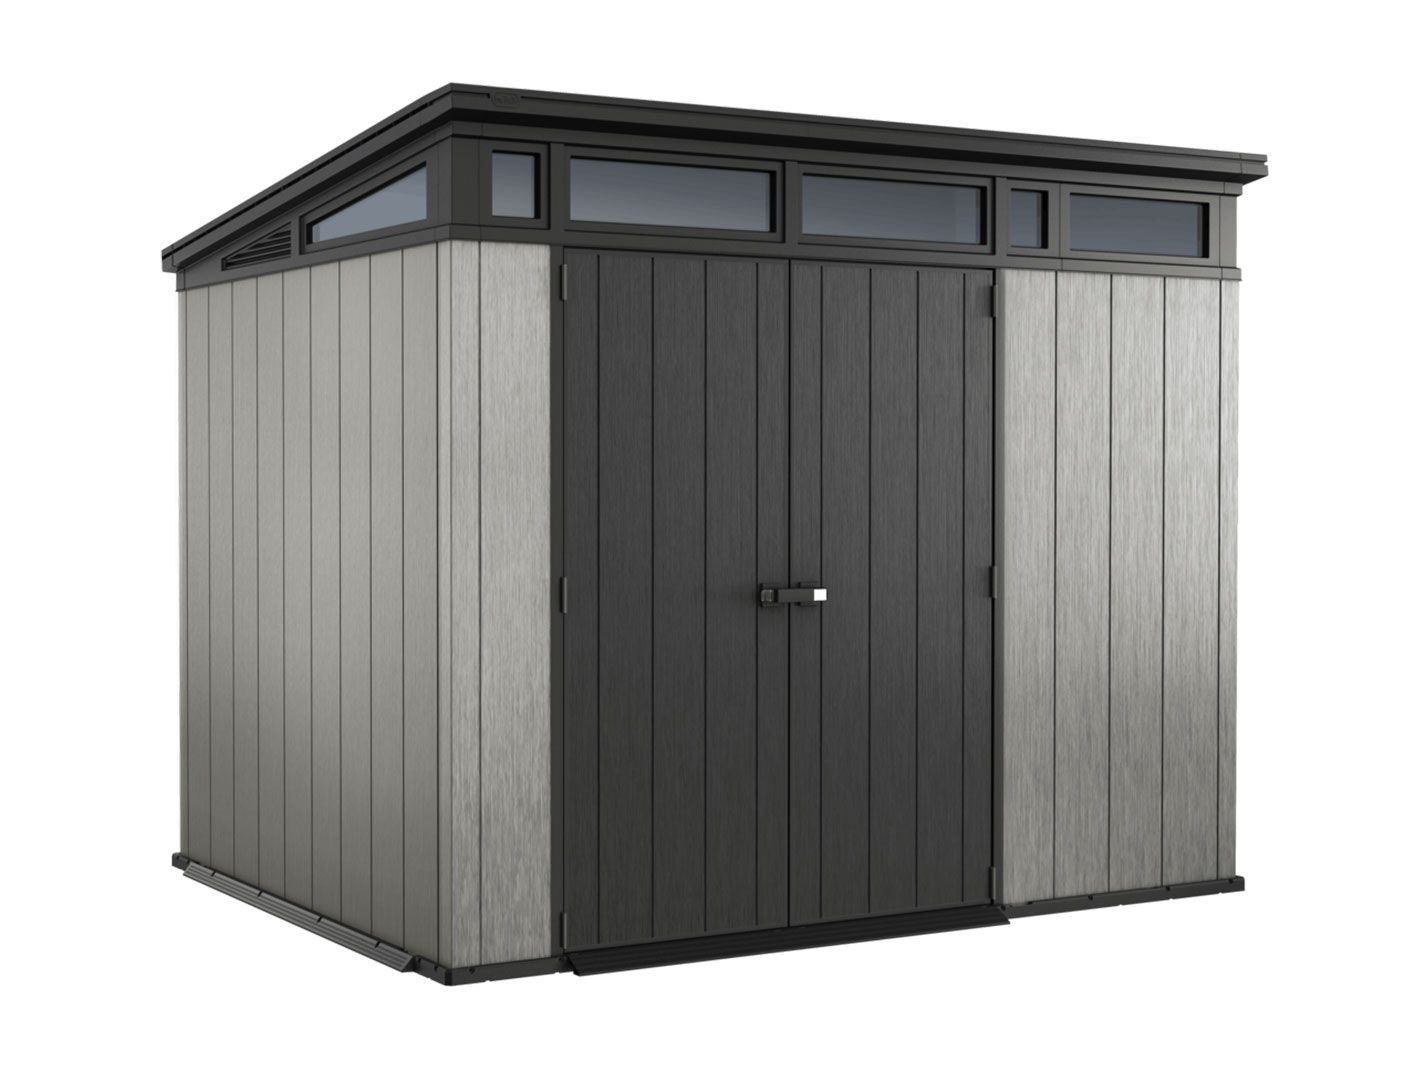 Keter Artisan 7x9 Shed 2 77m X 2 18m Resin Garden Sheds Sheds Carports Trade Tested Shed Storage Outdoor Storage Solutions Storage Shed